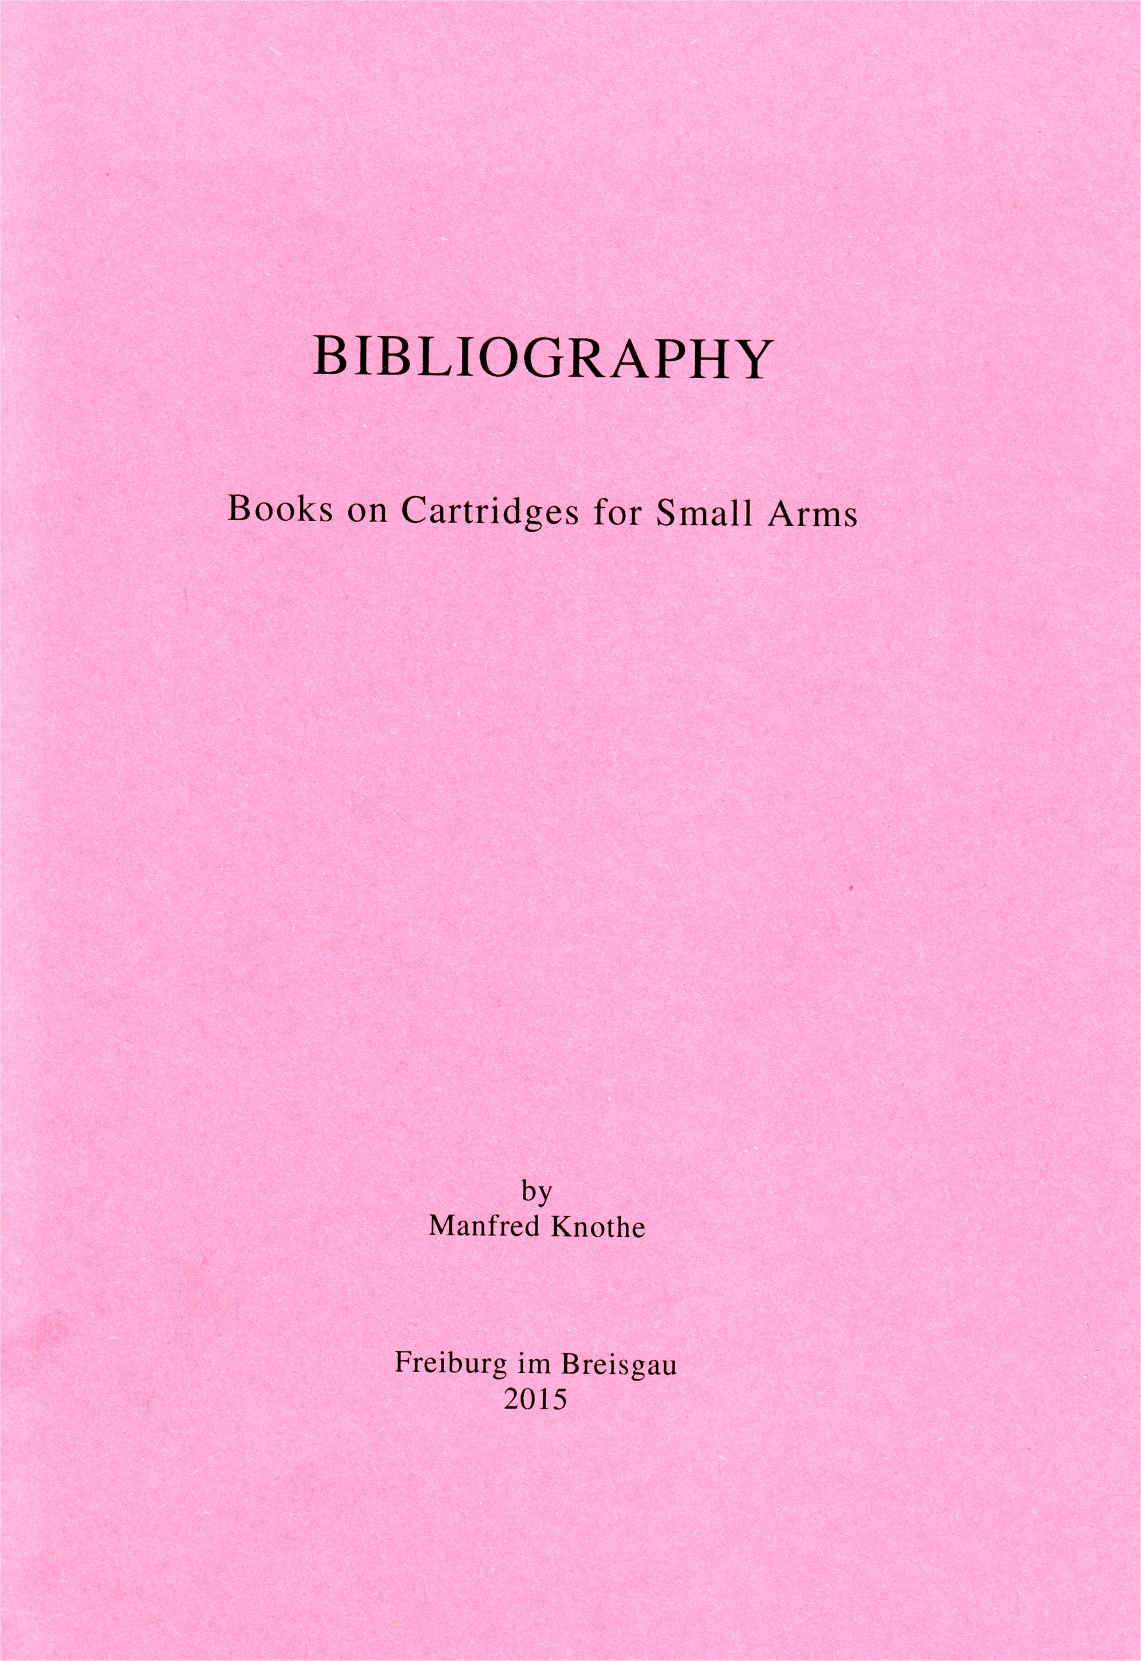 Bibliography by Manfred Knothe